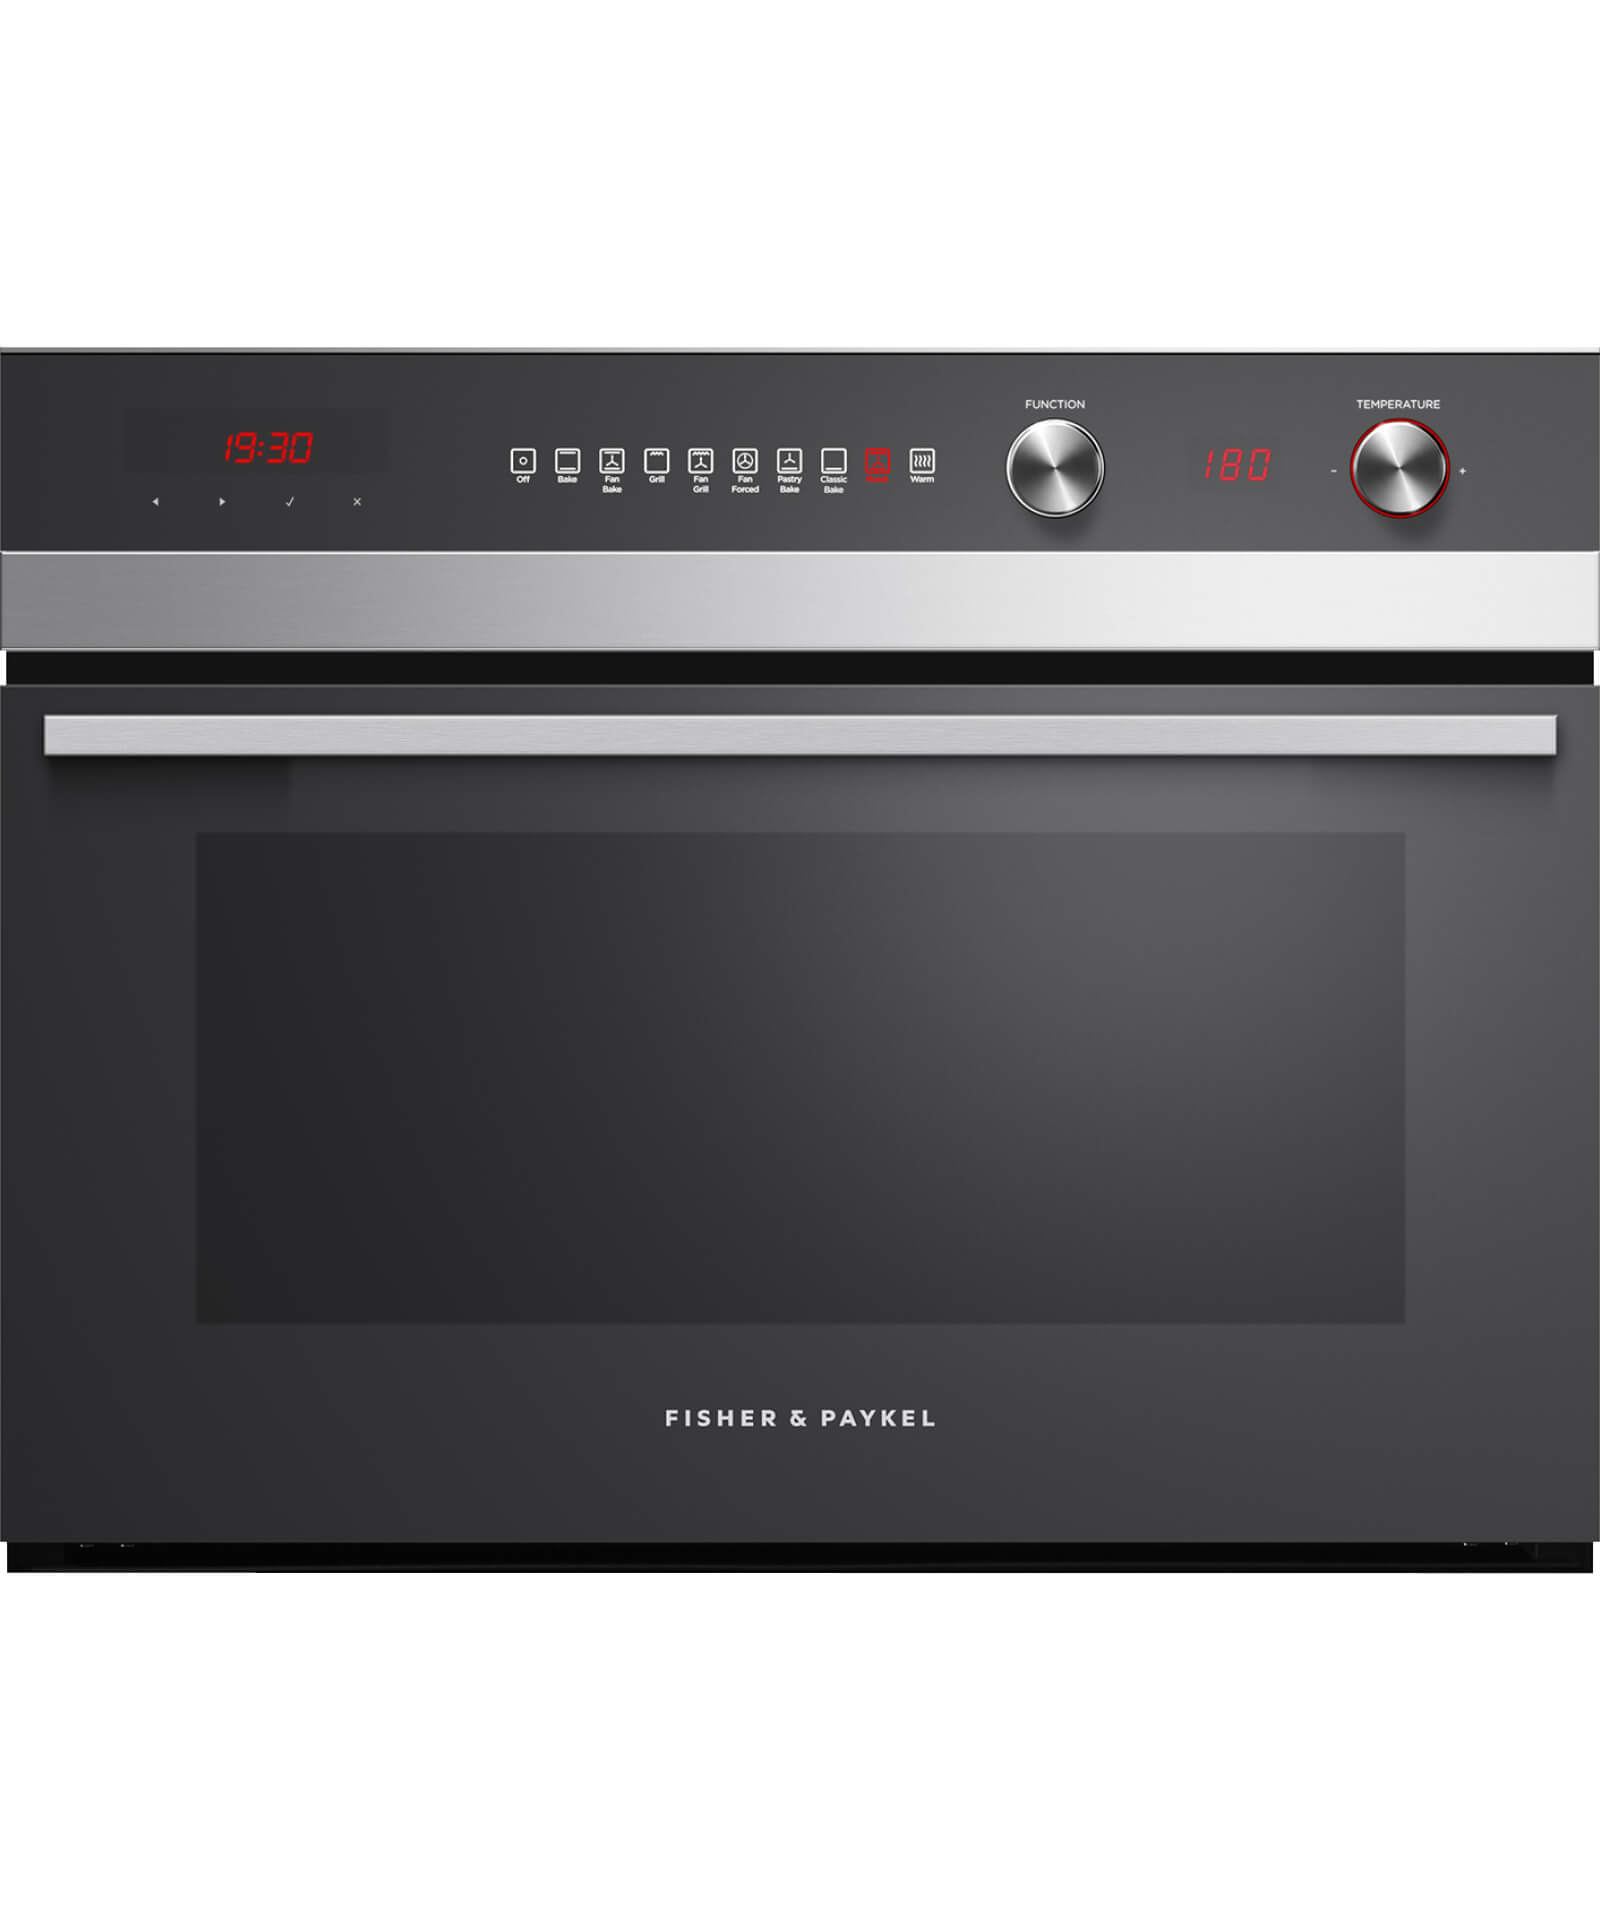 OB60NC9DEX1 - 60cm 9 Function Compact Built-in Oven - 55L Gross Capacity - 81497